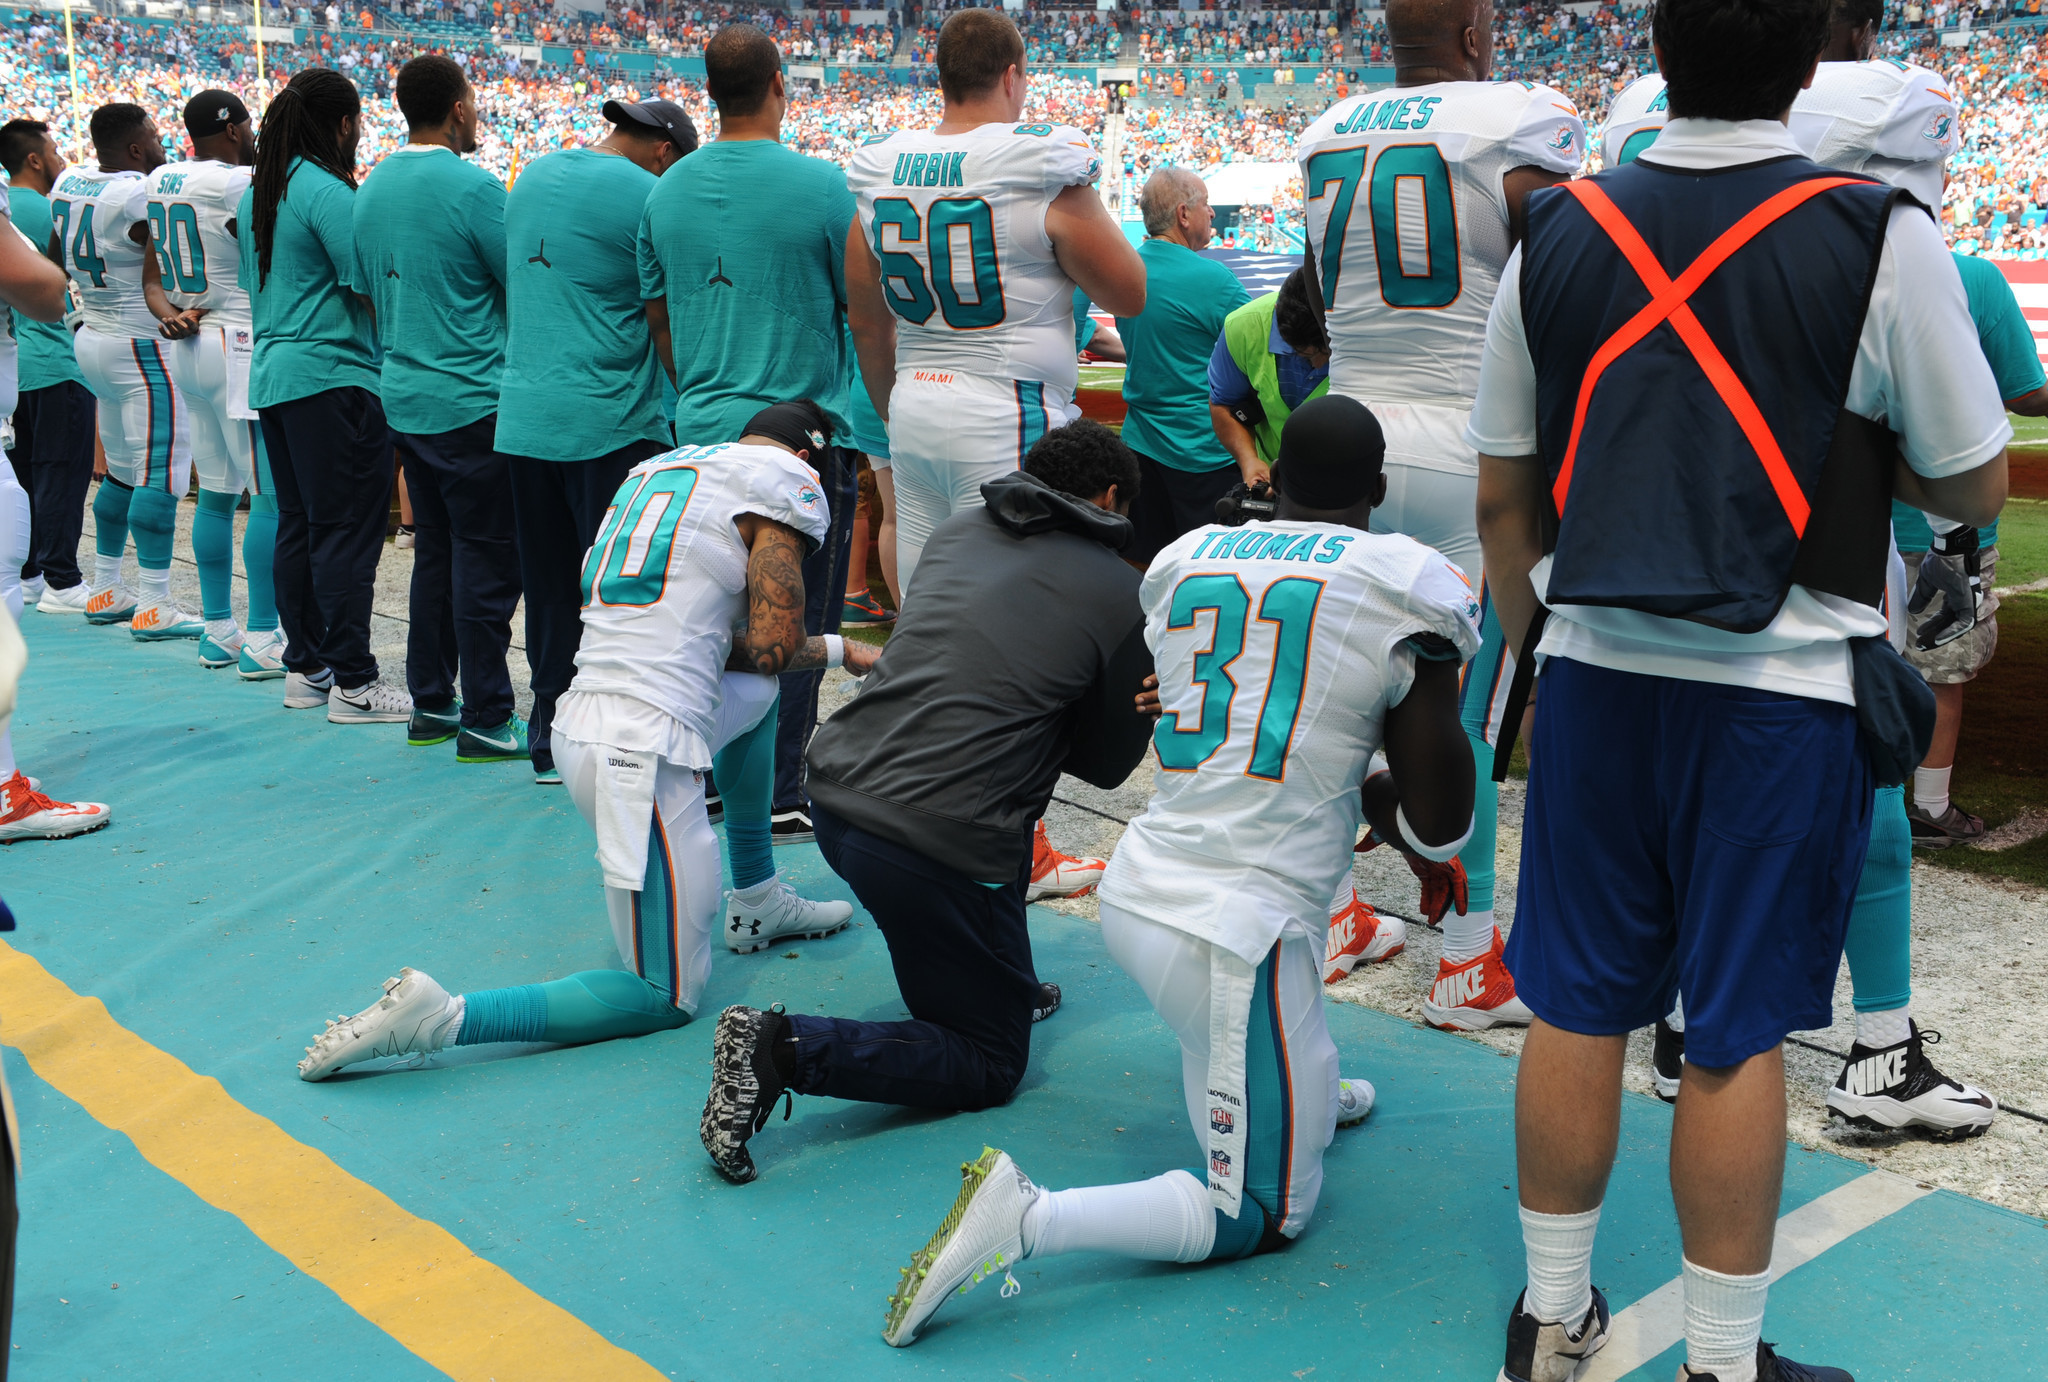 Sfl-dolphins-michael-thomas-reflects-on-kneeling-during-national-anthem-20170110